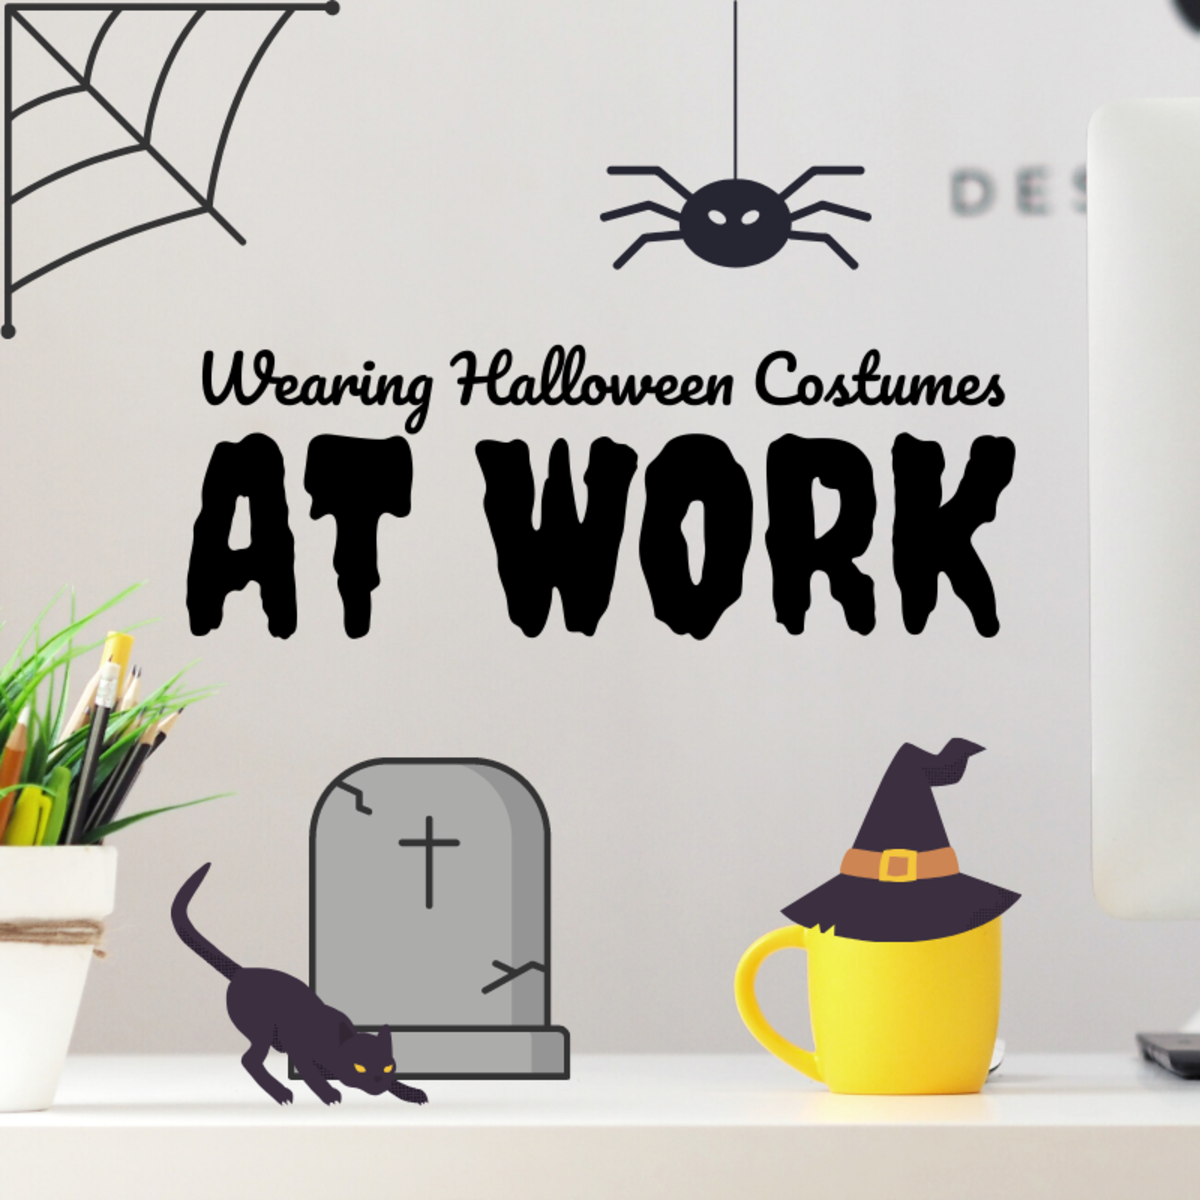 When it comes to Halloween, dressing up for work is a little different than dressing up for a Halloween party. Learn the dos and don'ts of workplace costumes!